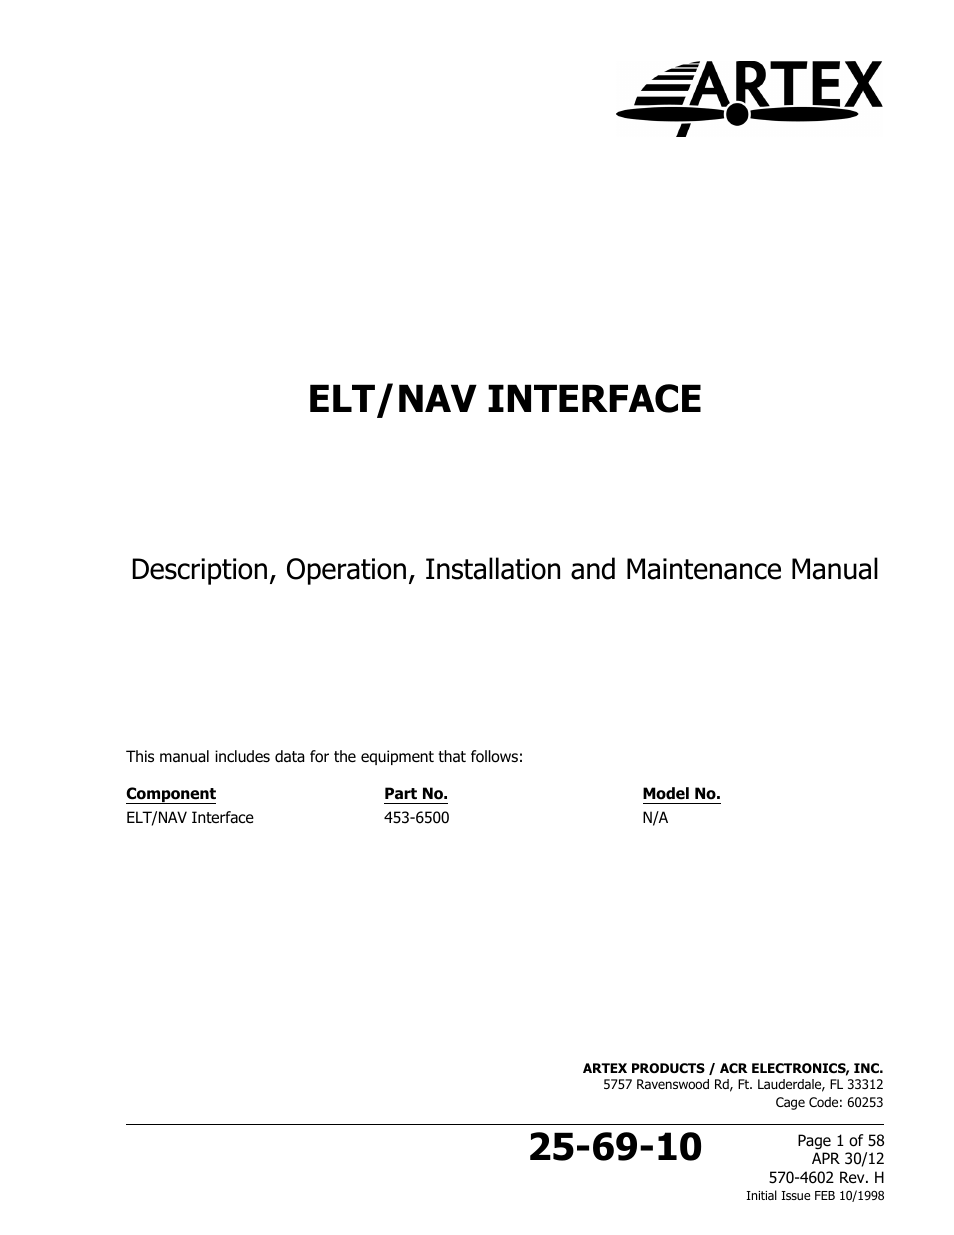 acrartex elt to nav interface page1 acr&artex elt to nav interface user manual 58 pages elect wiring diagram at mifinder.co